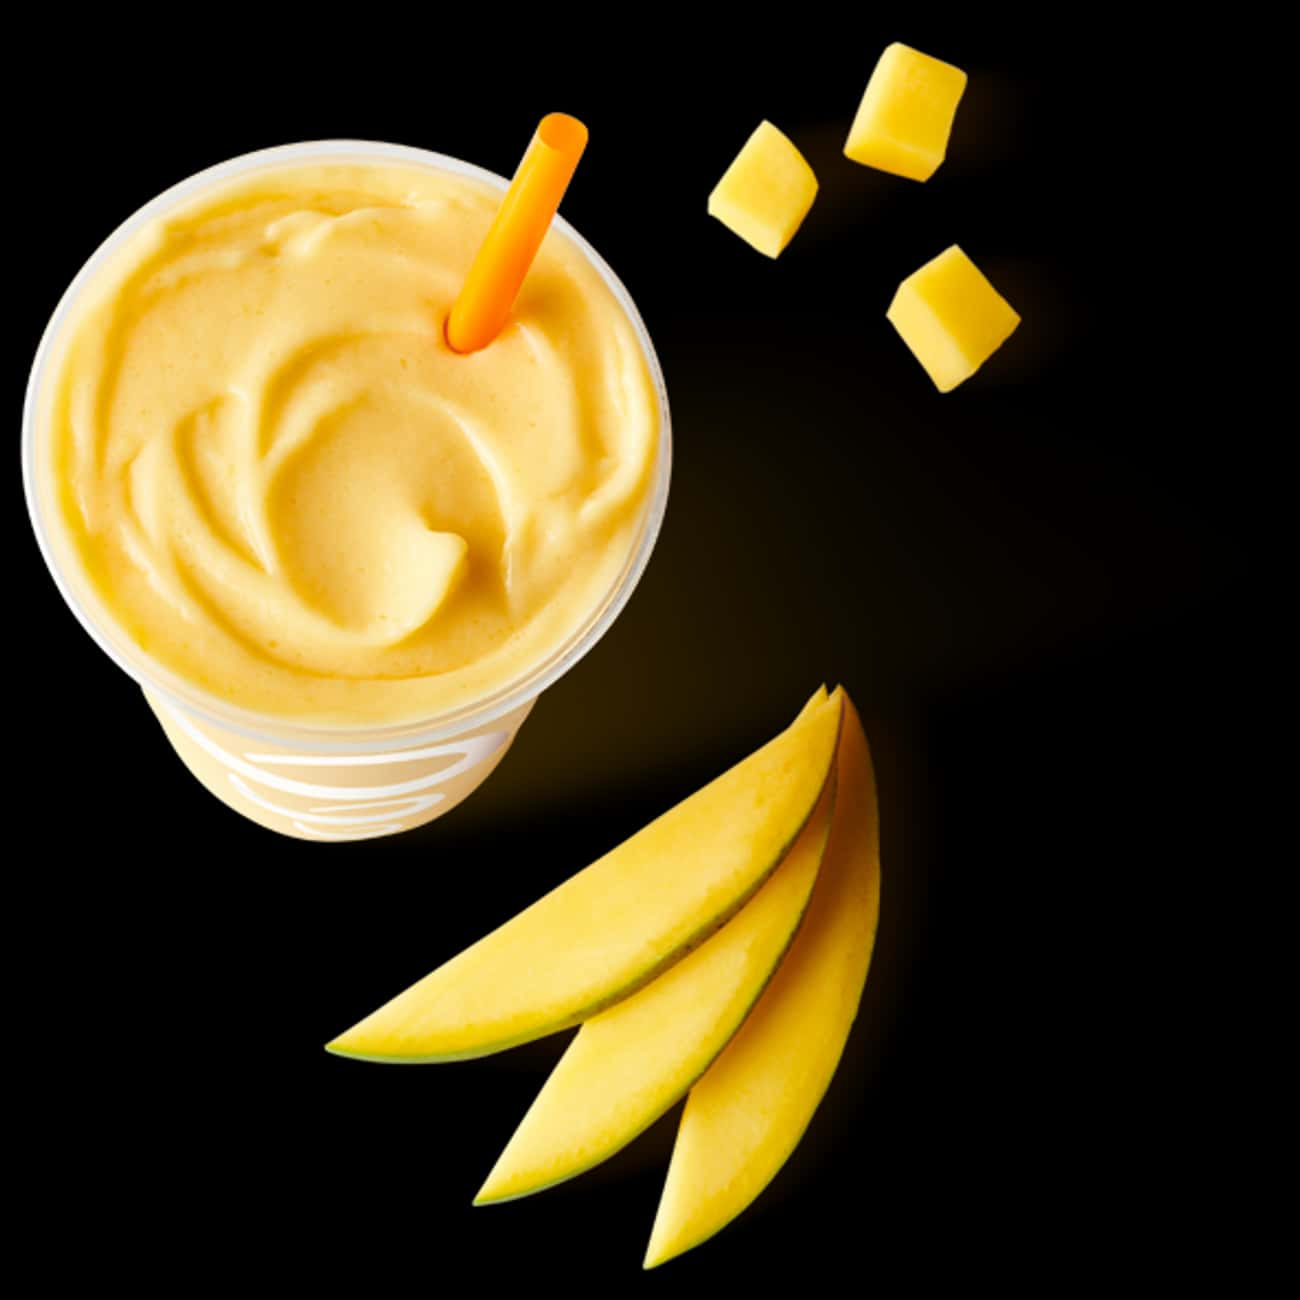 Mango-a-go-go is listed (or ranked) 4 on the list The Most Delicious Smoothies At Jamba Juice